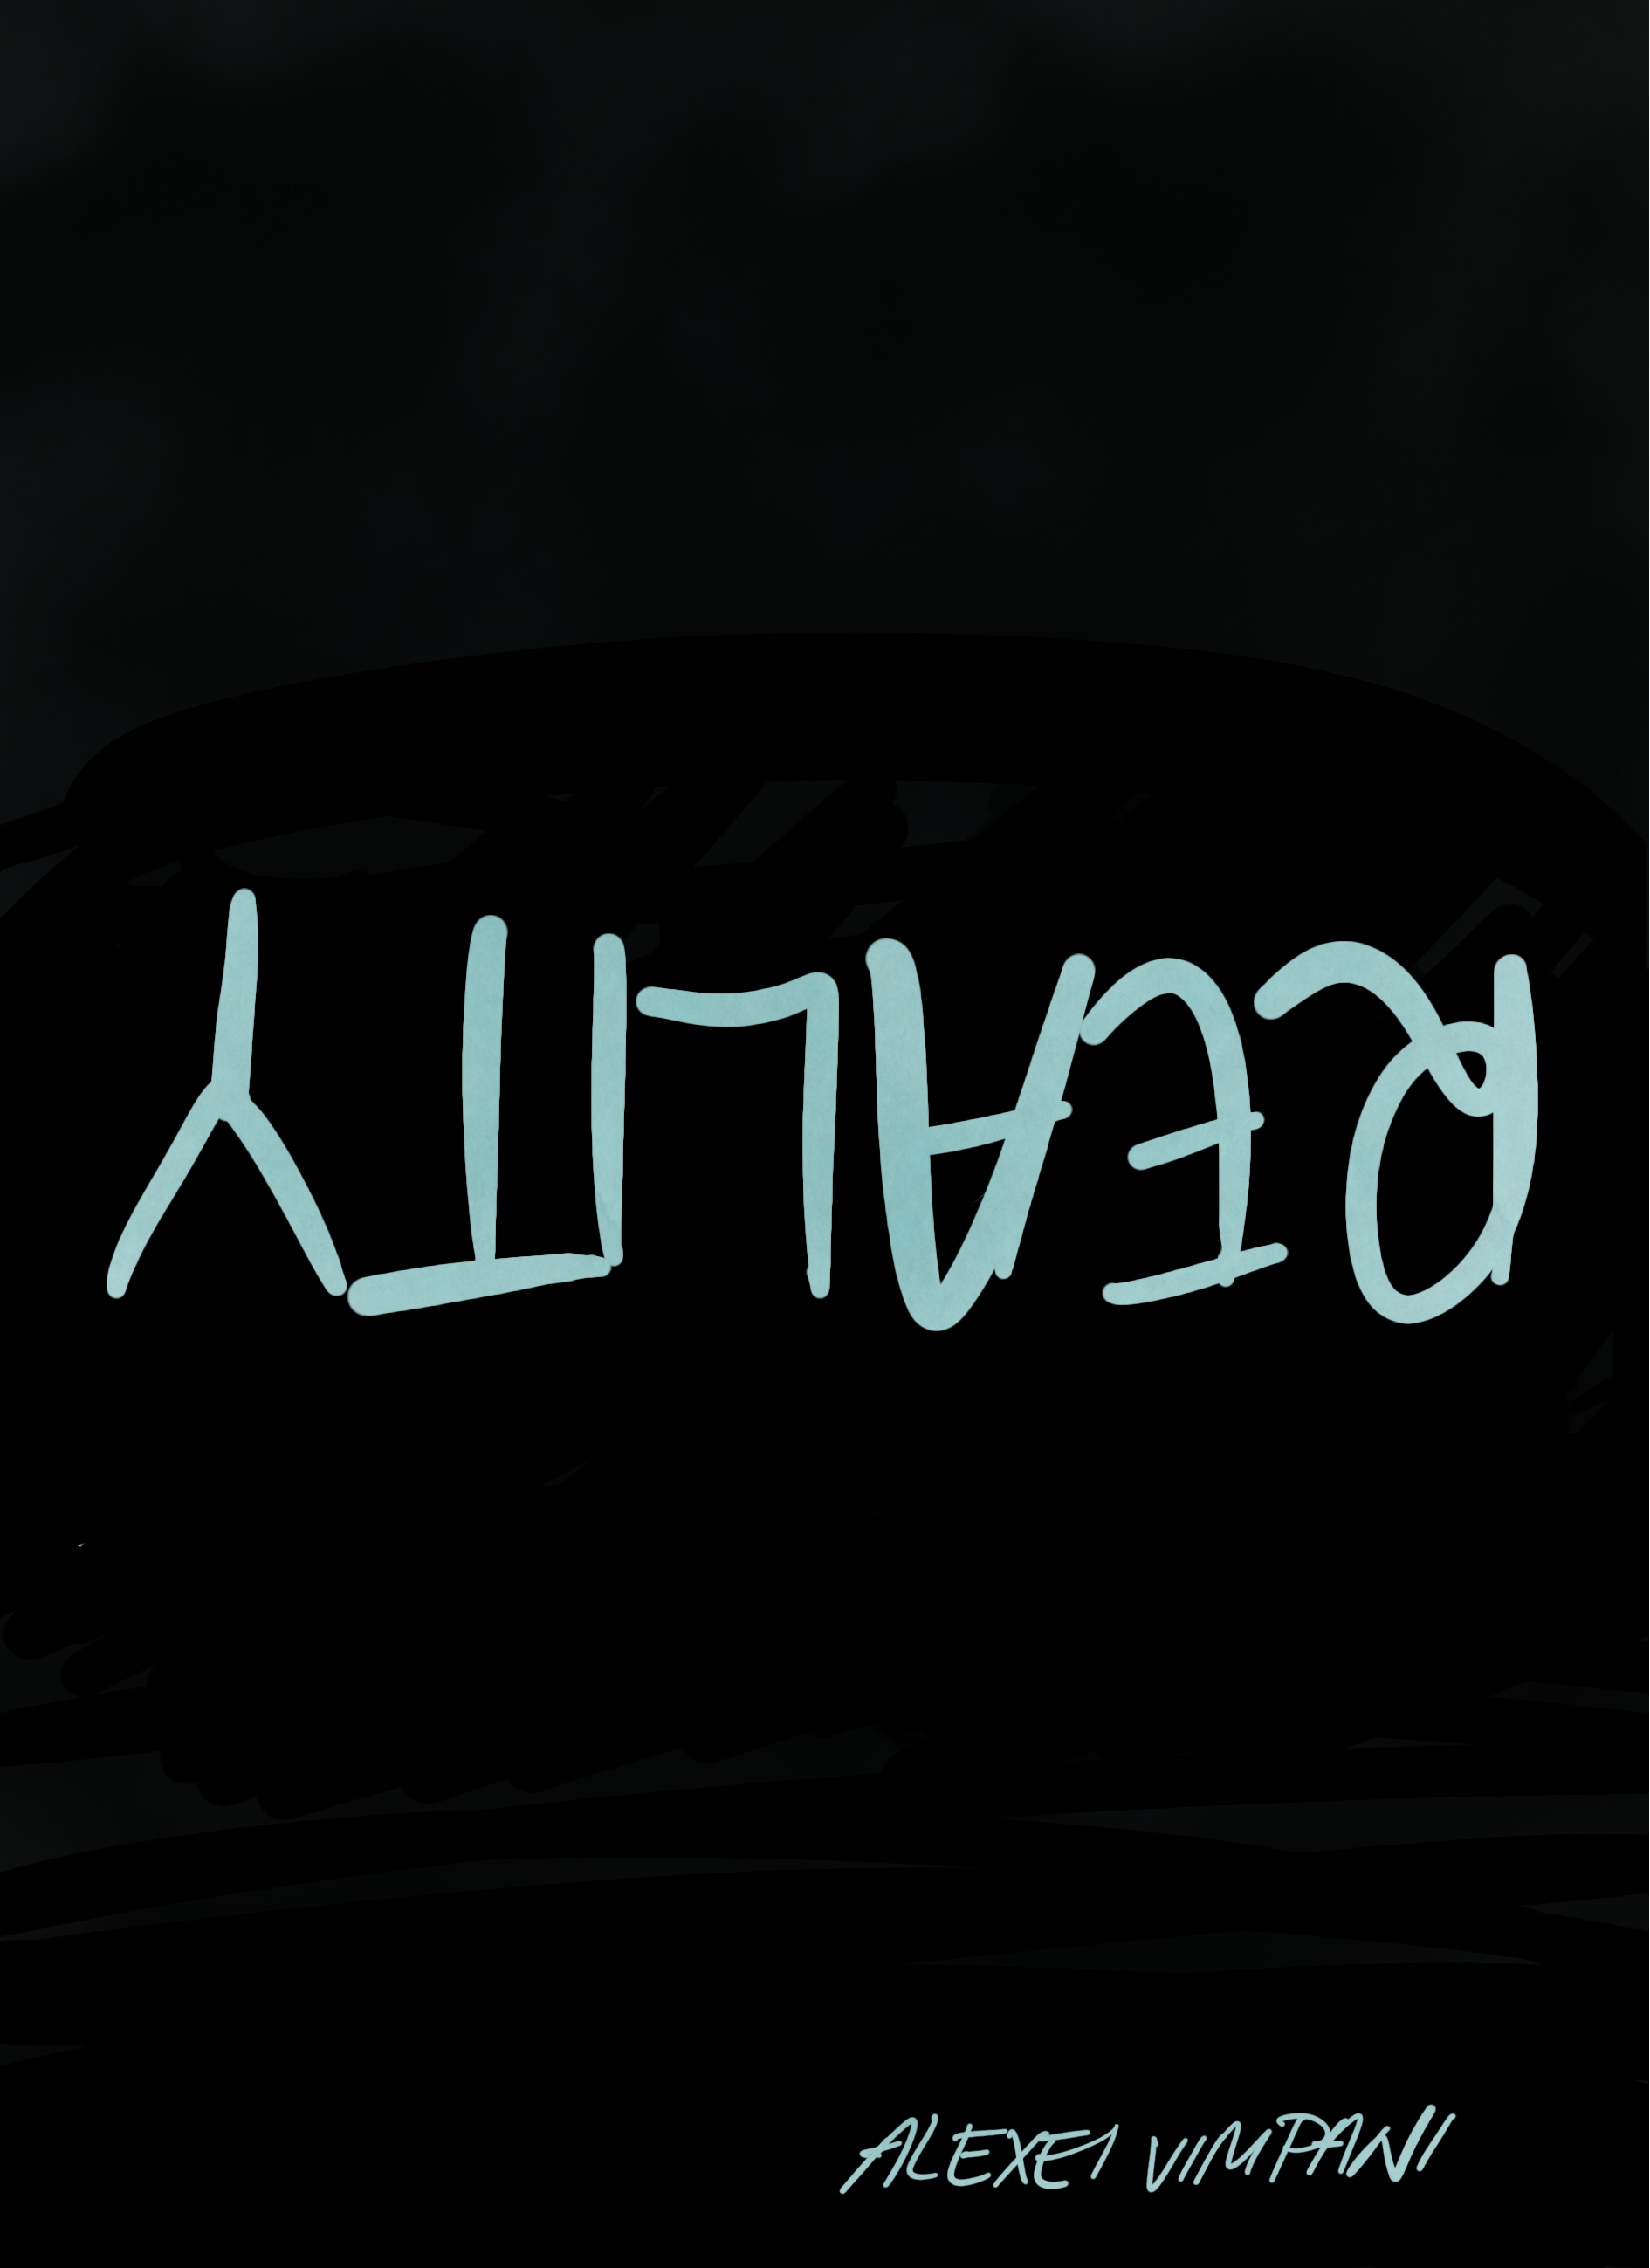 """""""Reality"""" written upside down in pale teal on a black background."""